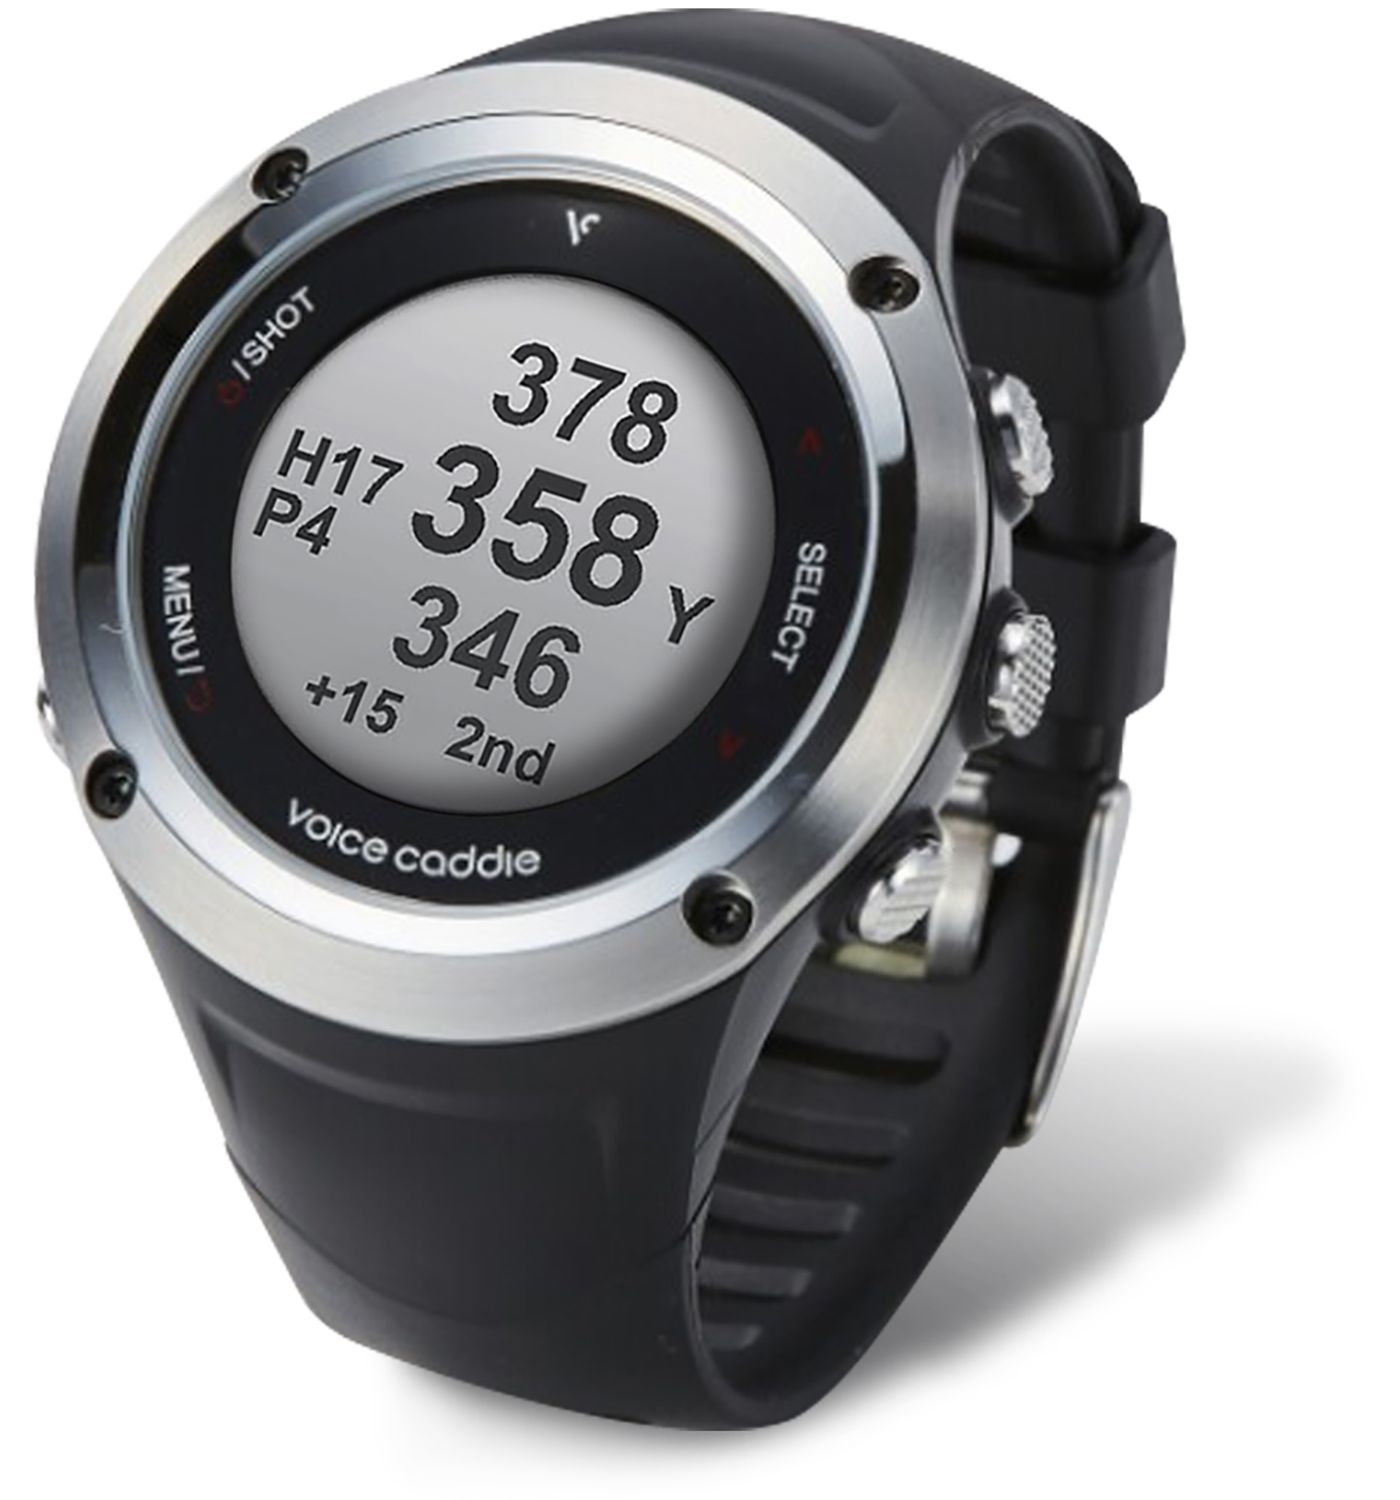 Voice Caddie G2 Hybrid Golf GPS Watch w/ Slope